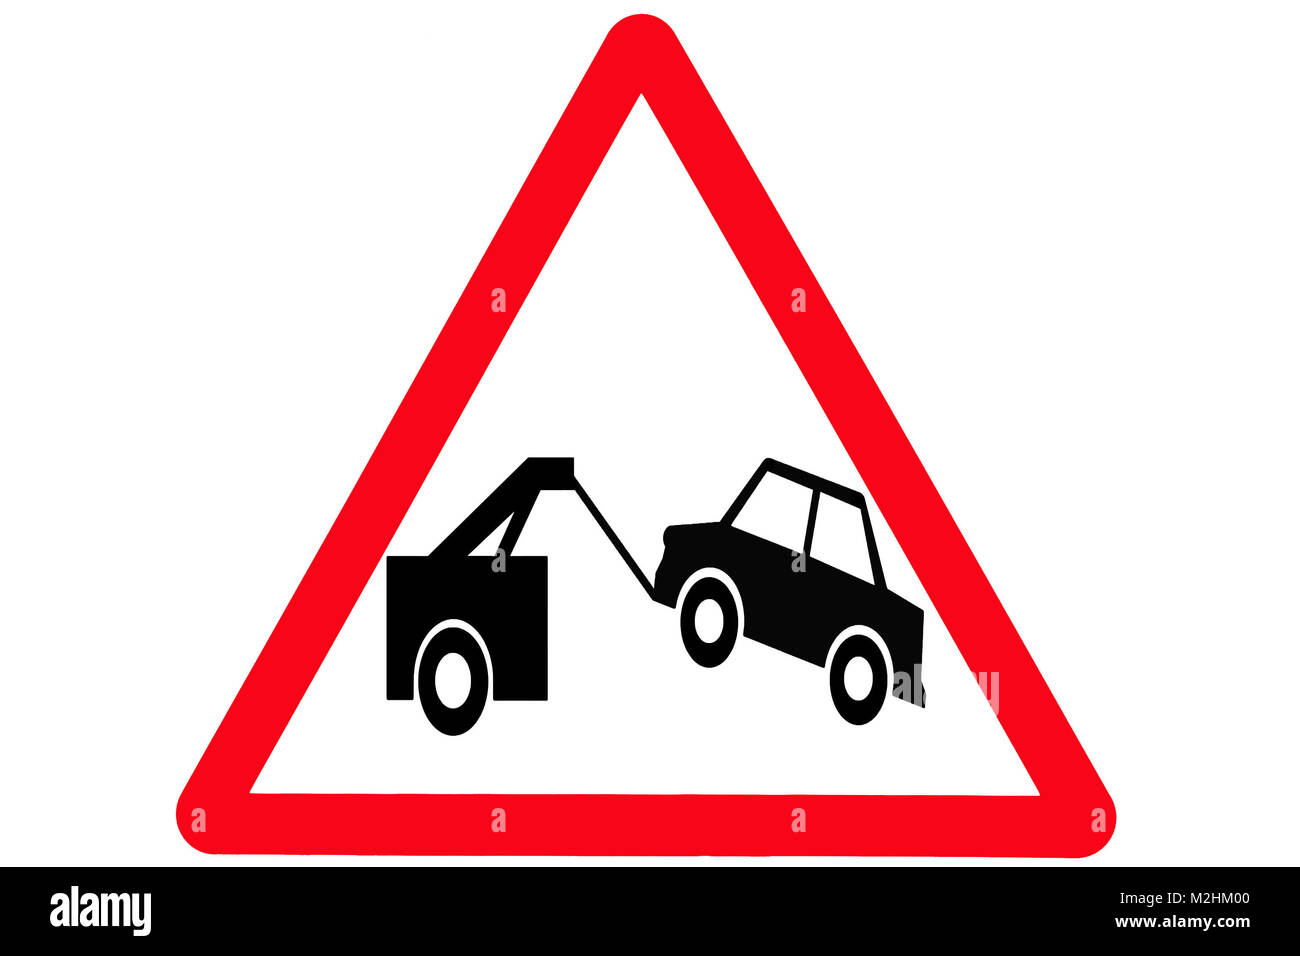 Triangular warning sign for vehicle towing - Stock Image